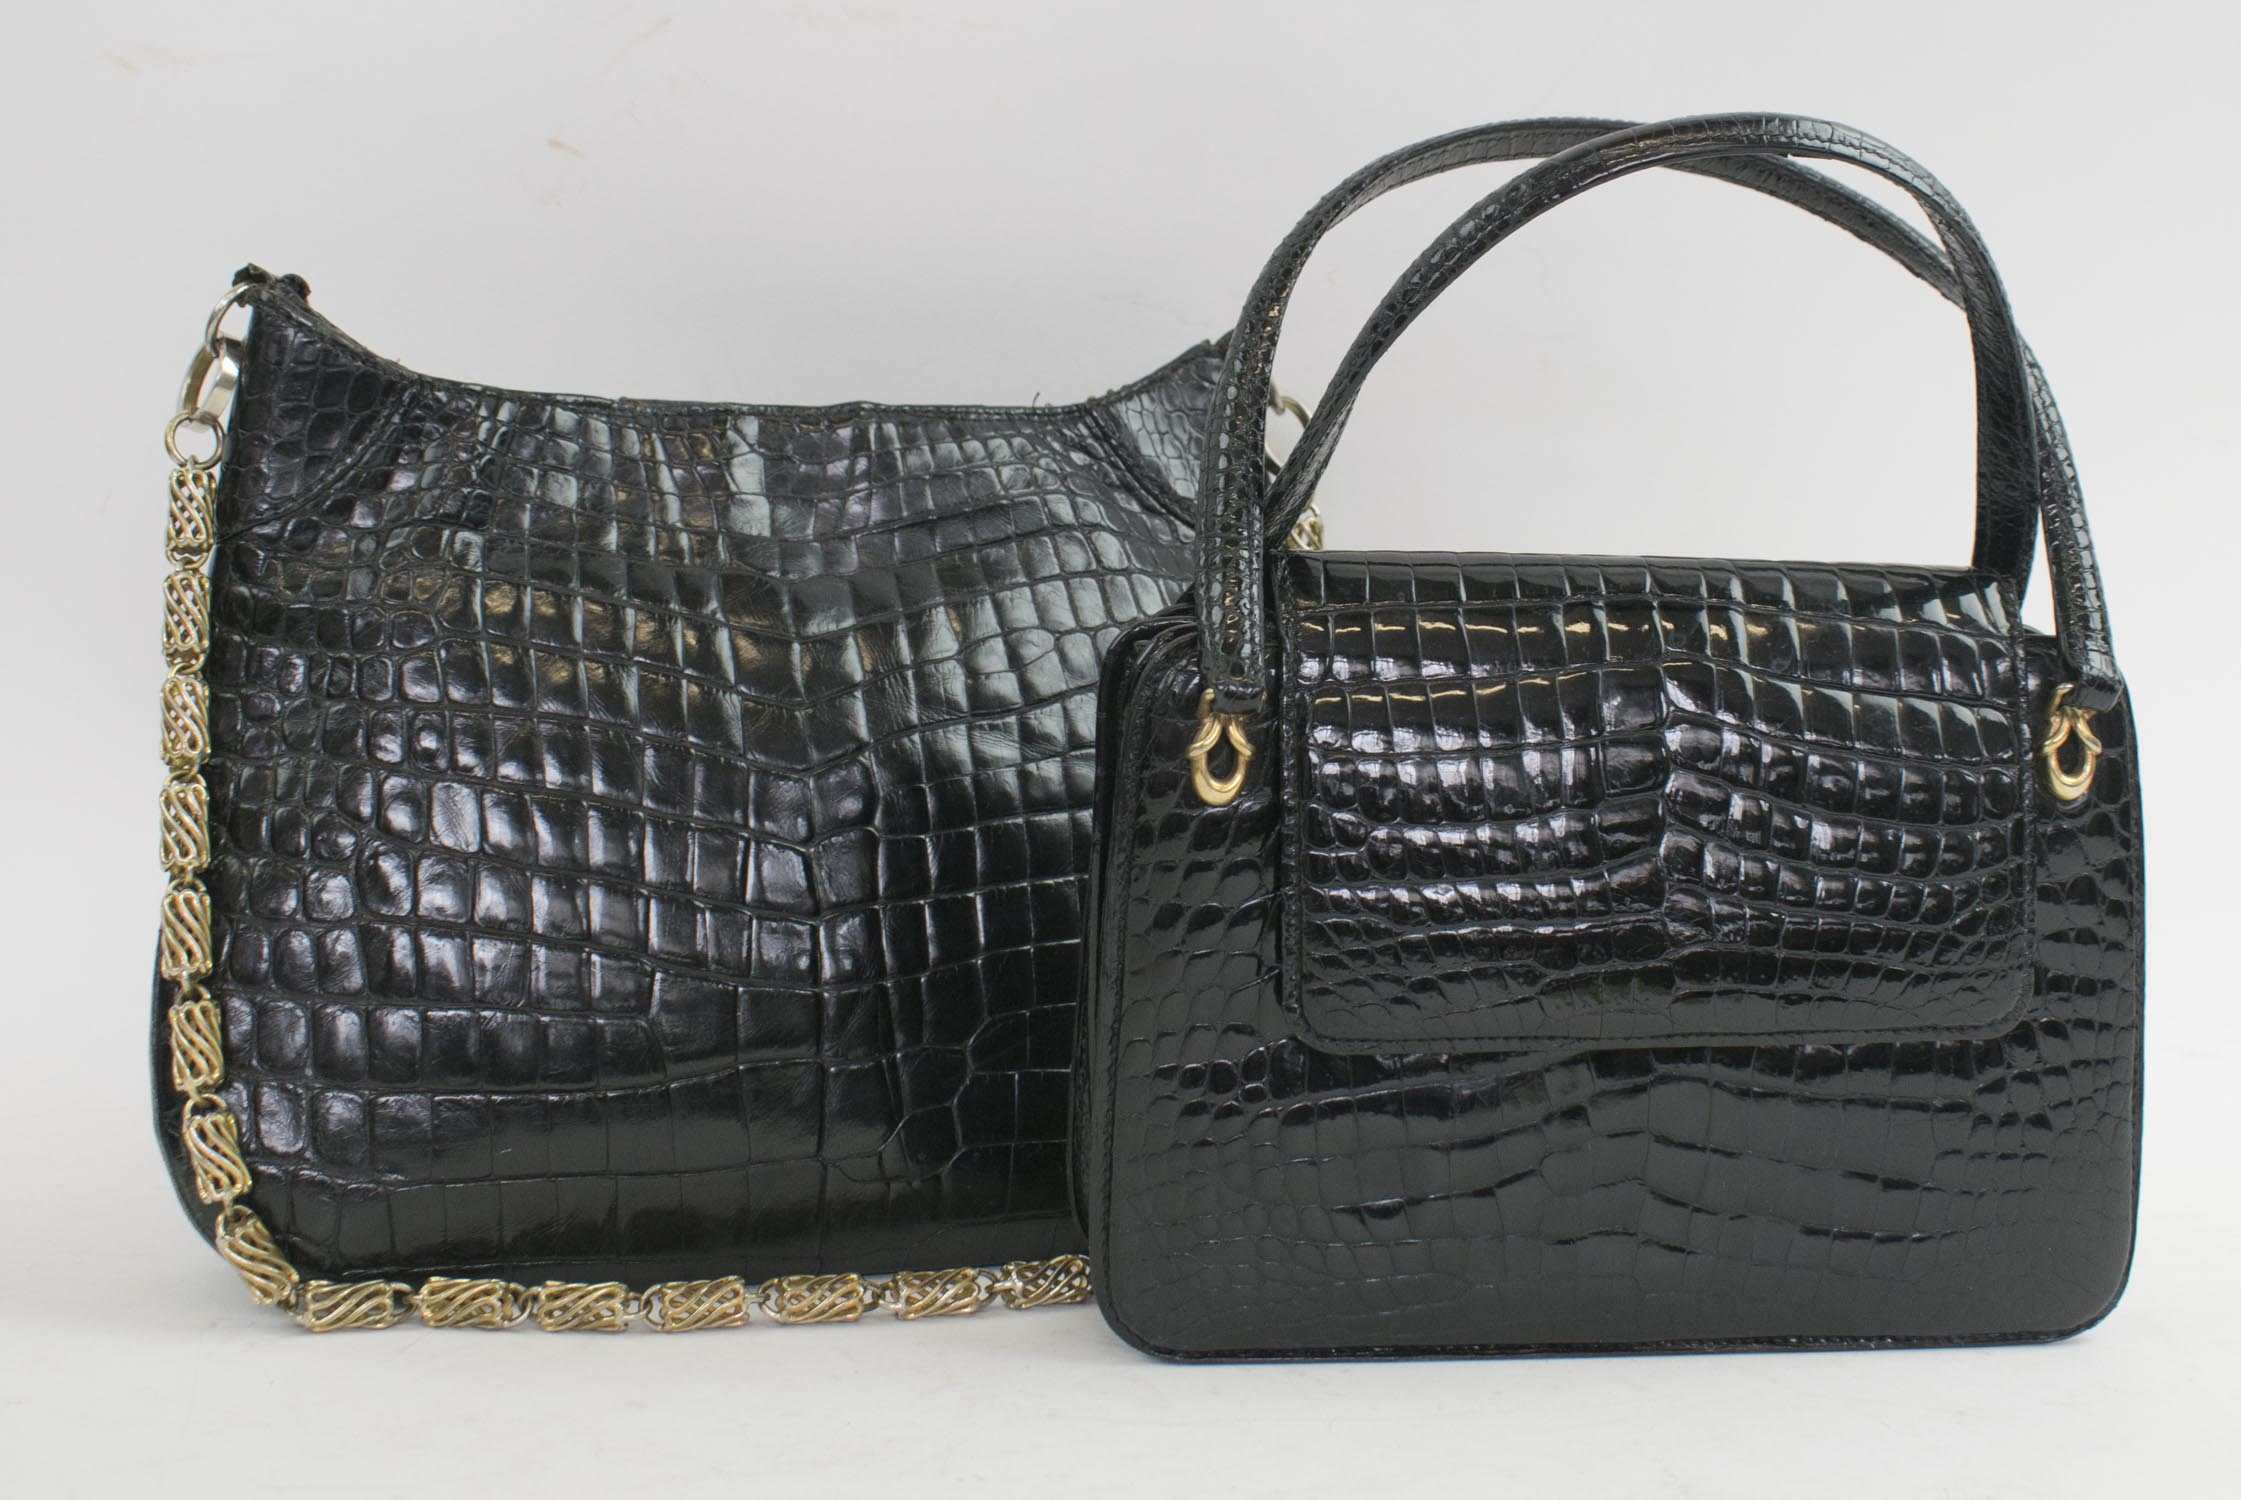 47b17b2ff5a524 GUCCI VINTAGE CROCODILE BAGS, one with two top handles and flap ...